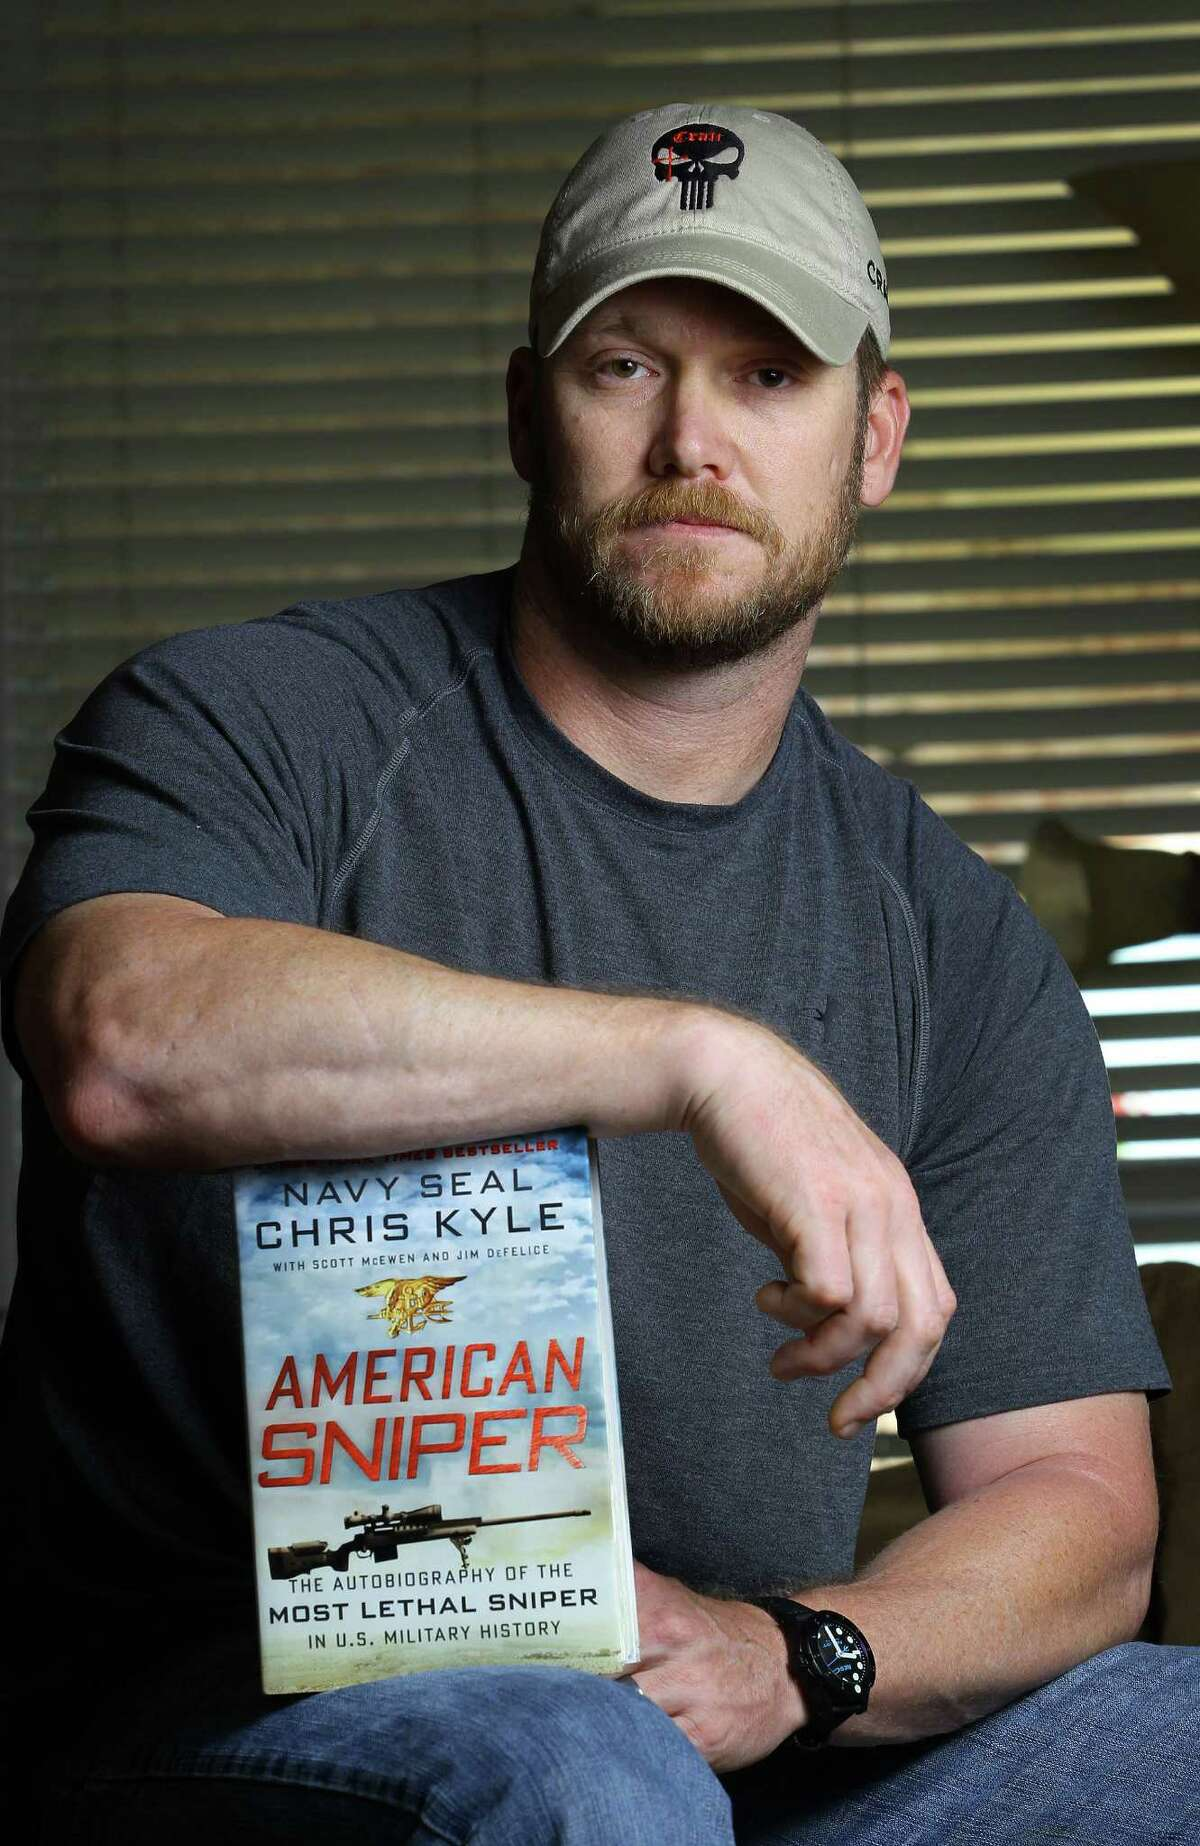 """In this April 6, 2012 file photo, Chris Kyle, a former Navy SEAL and author of the book """"American Sniper,"""" poses in Midlothian, Texas. Kyle and his friend Chad Littlefield were fatally shot at a shooting range southwest of Fort Worth, Texas, on Saturday, Feb. 2, 2013. Former Marine Eddie Ray Routh, who came with them to the range, has been arrested for the murders. (AP Photo/The Fort Worth Star-Telegram, Paul Moseley, File)"""